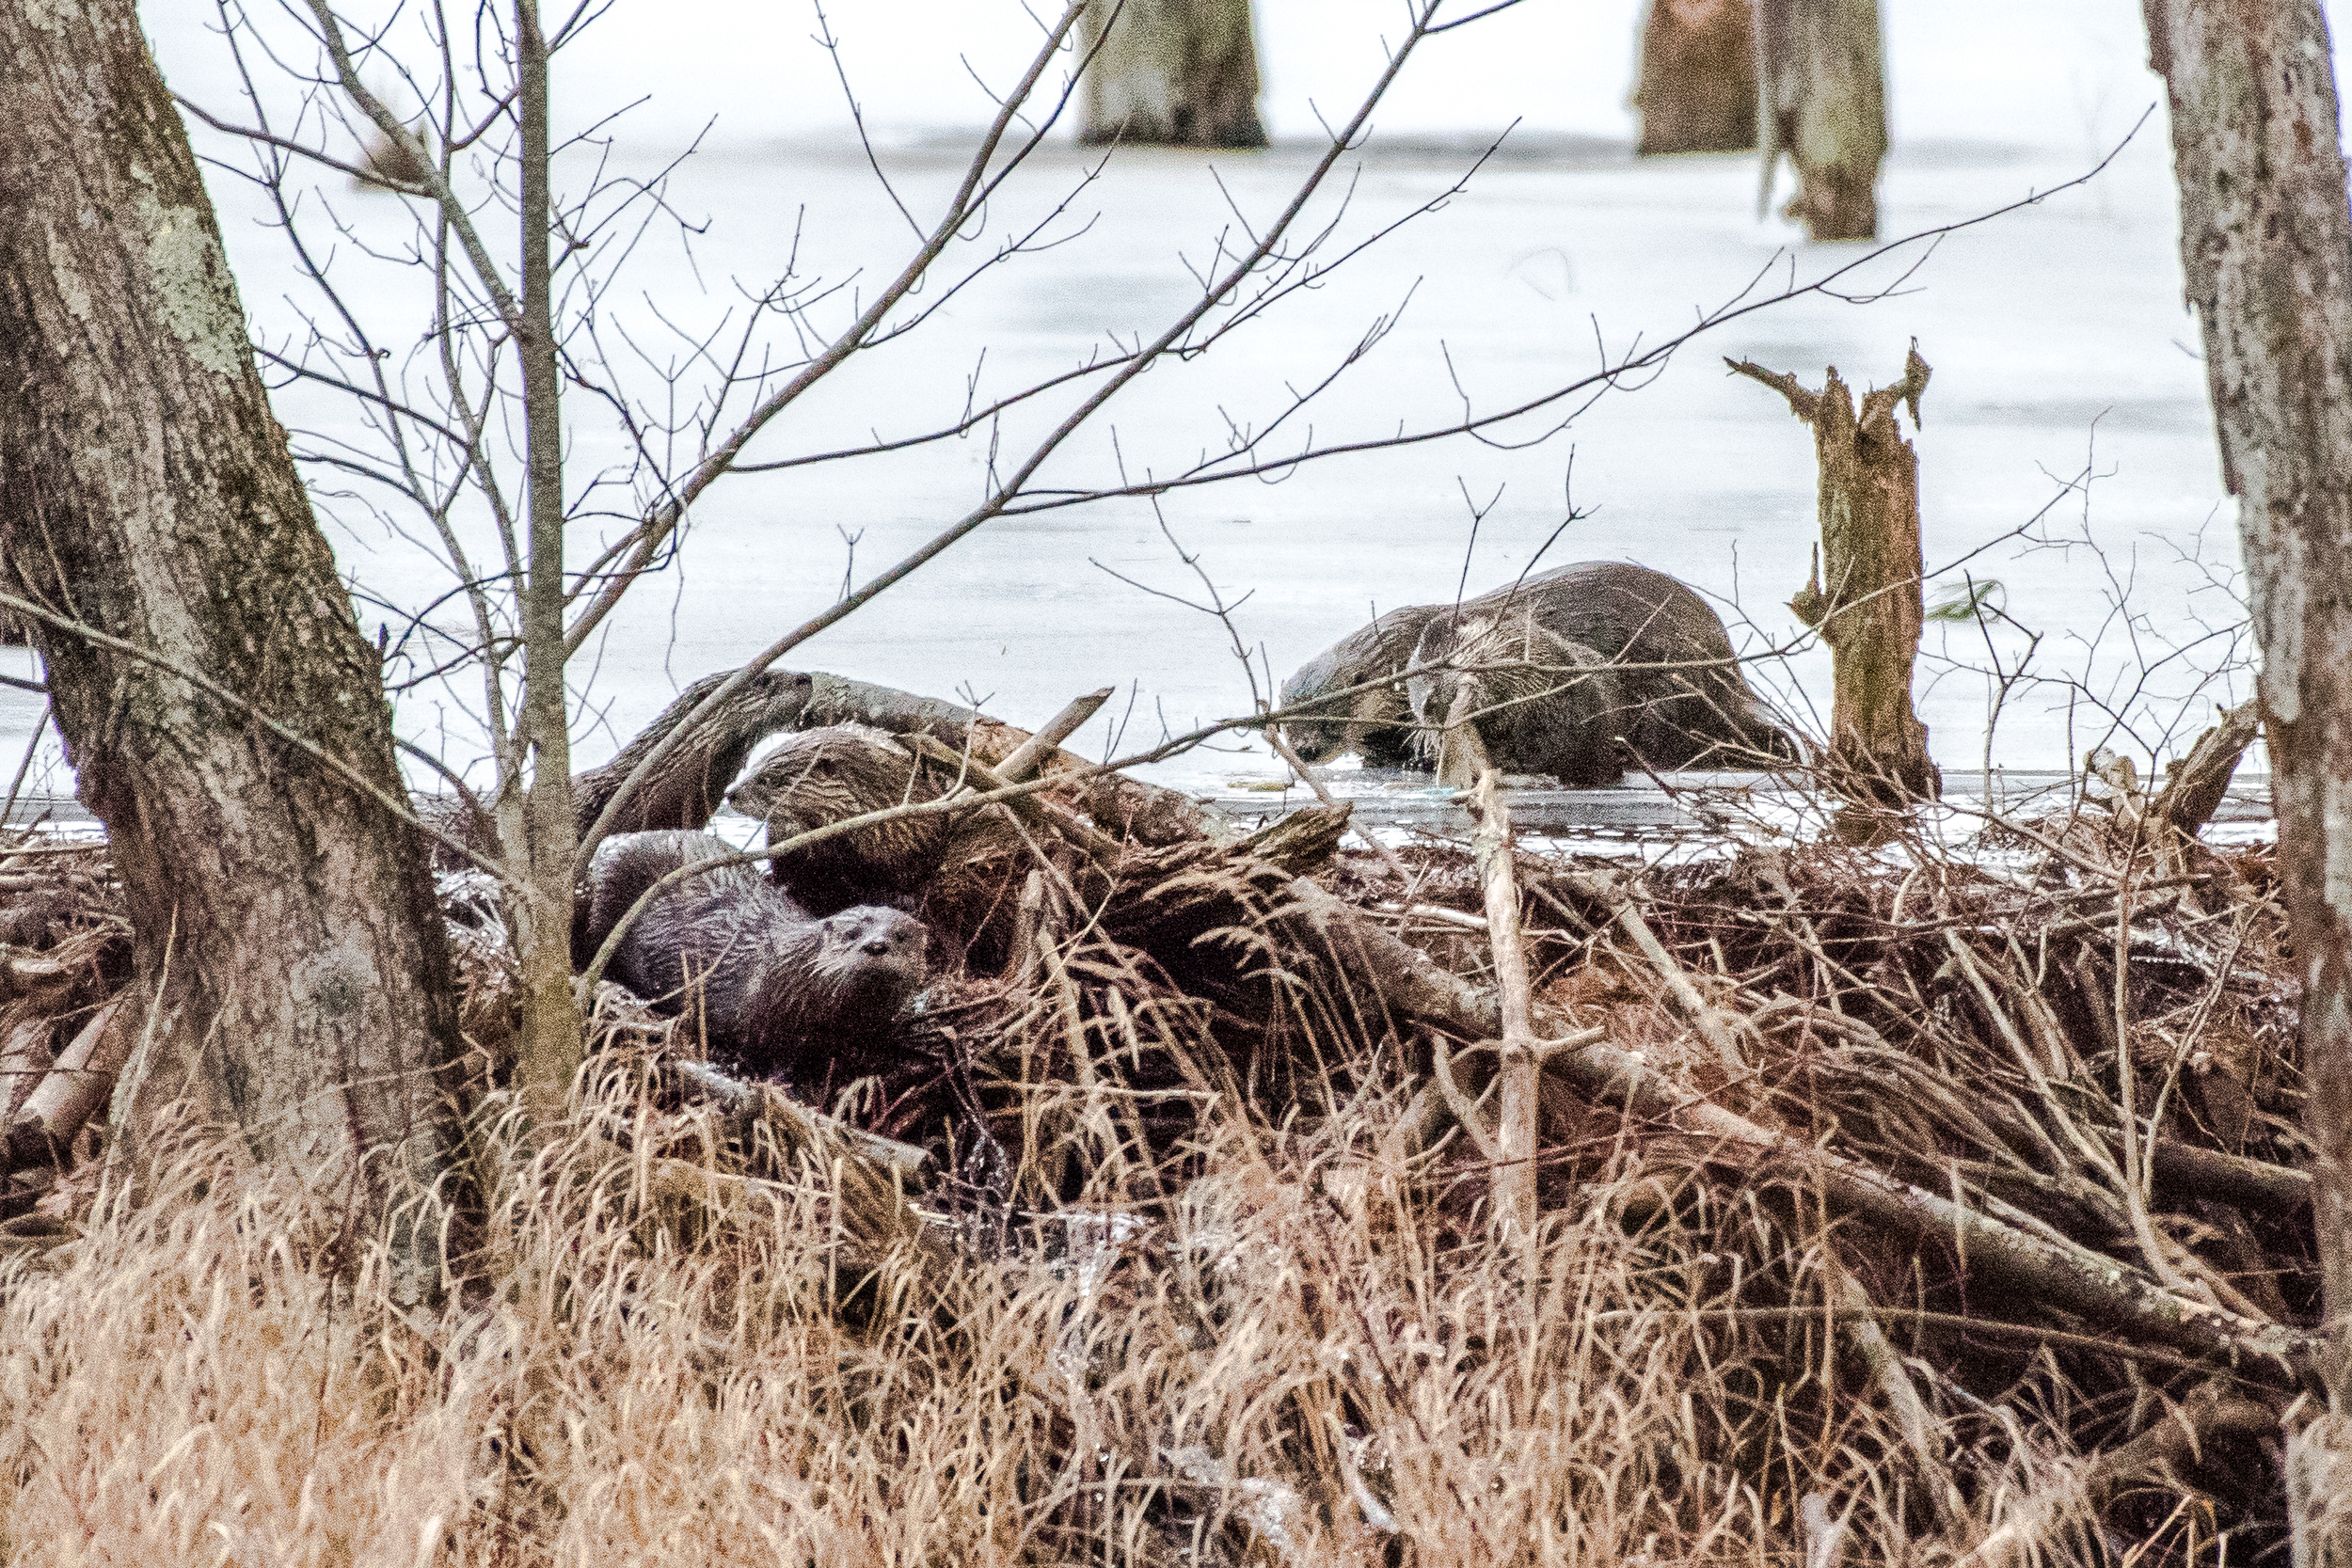 Fresh fish for breakfast. Can you see all 5 otters in this photo? 2/23/16